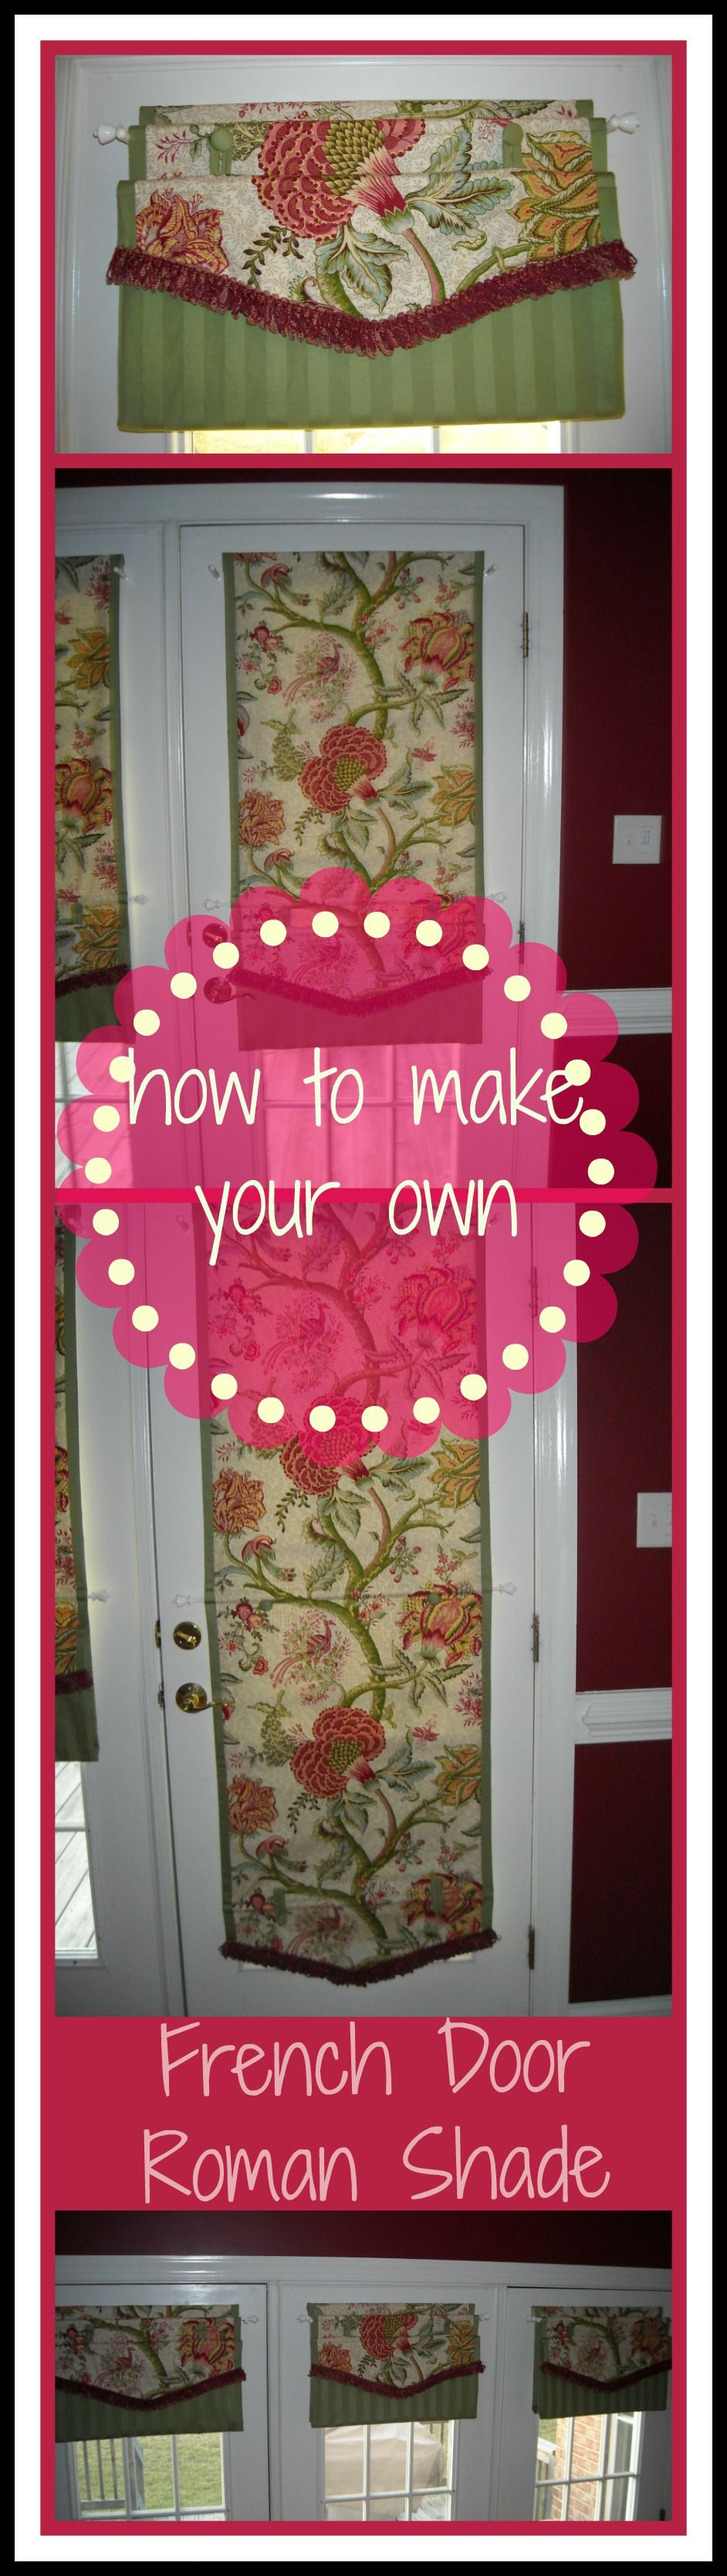 Diy Roman Shade For French Doors No Hardware Required These Babies Button Up Ditch The Cords And Hardwa French Doors French Door Coverings Diy Shades